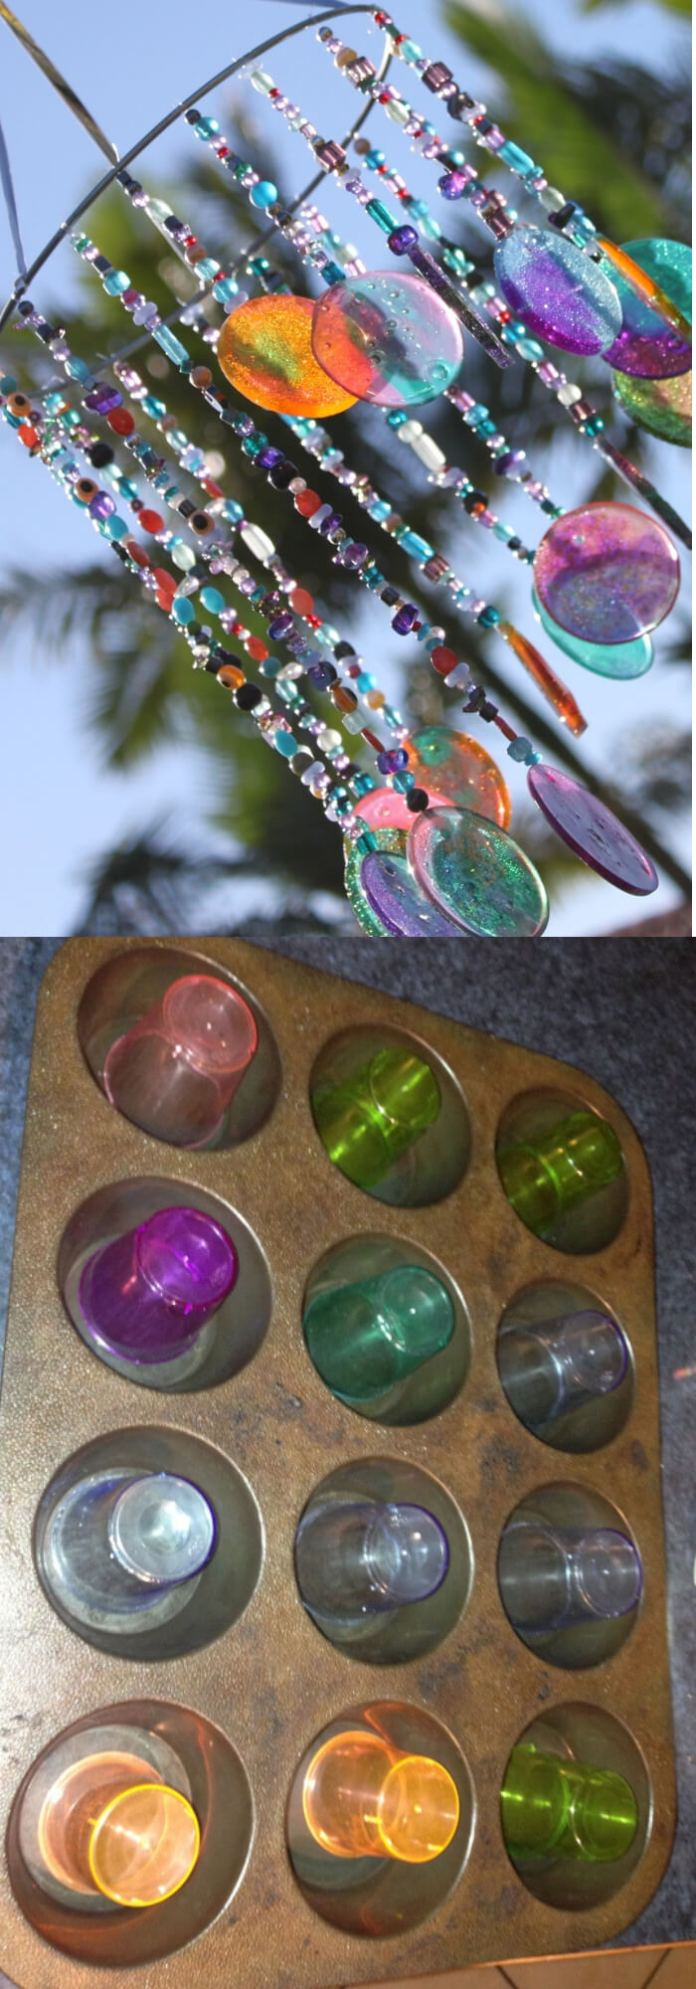 DIY Sun catcher/Wind chime